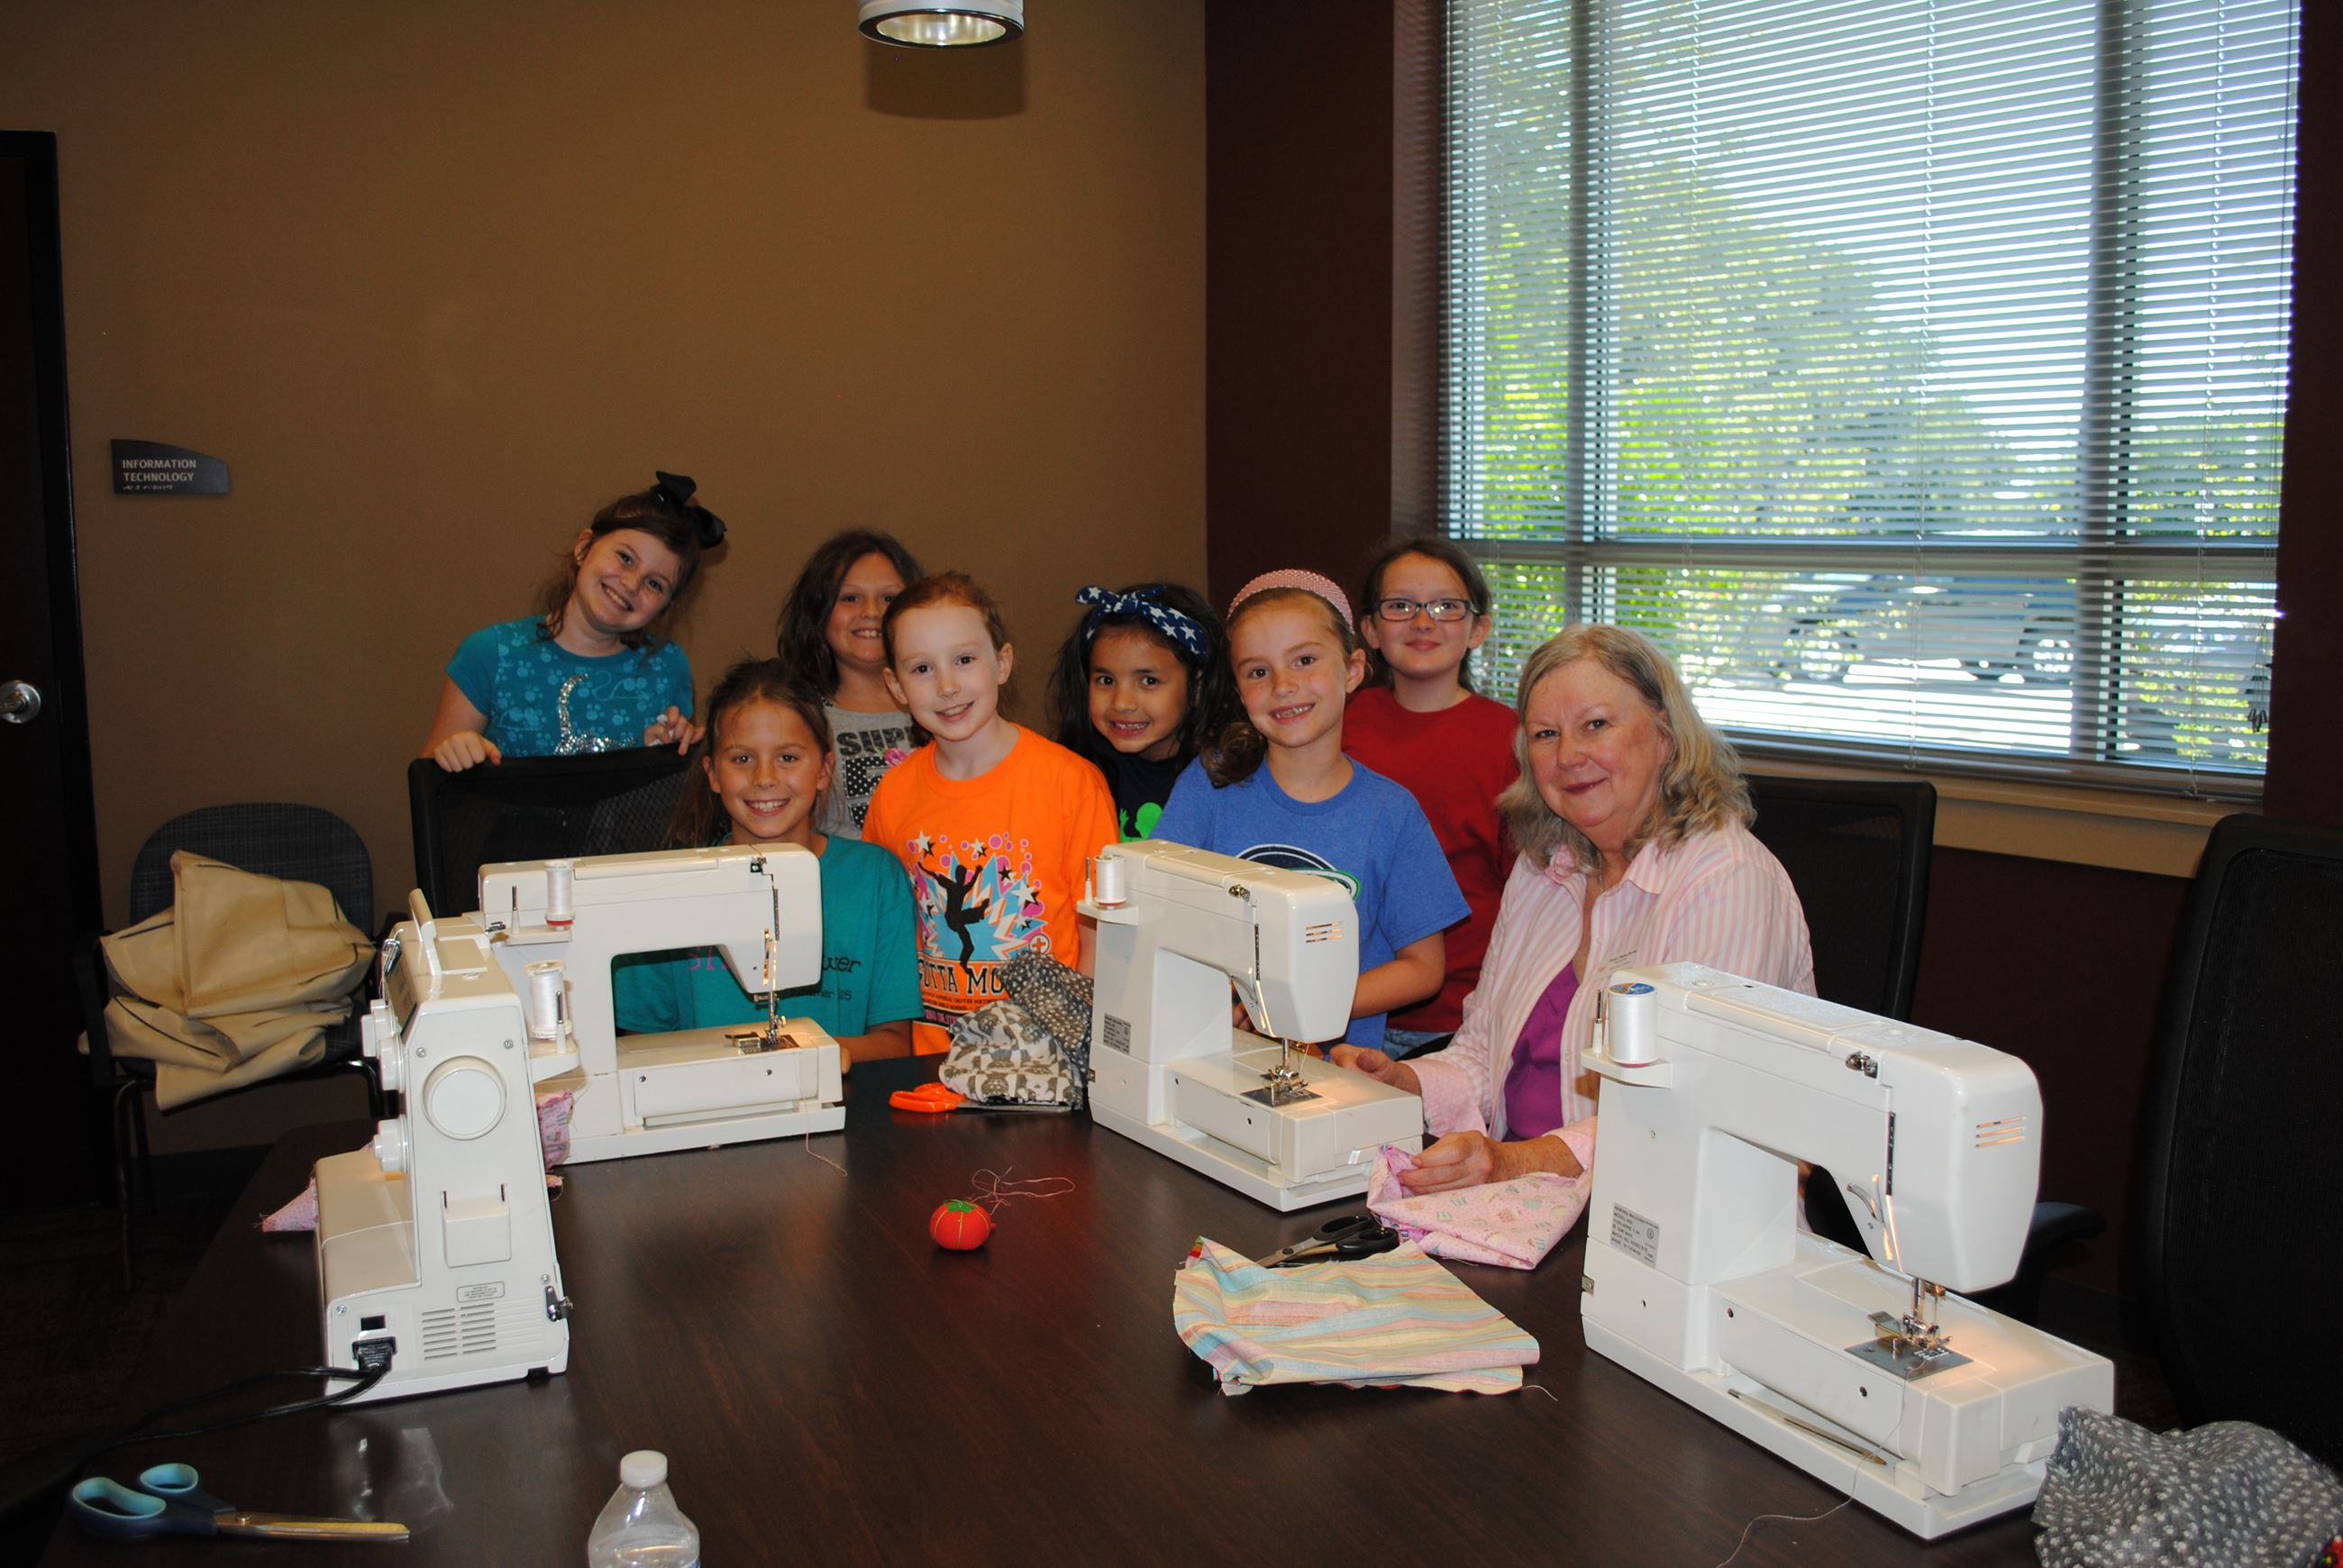 Sew Fun Camp